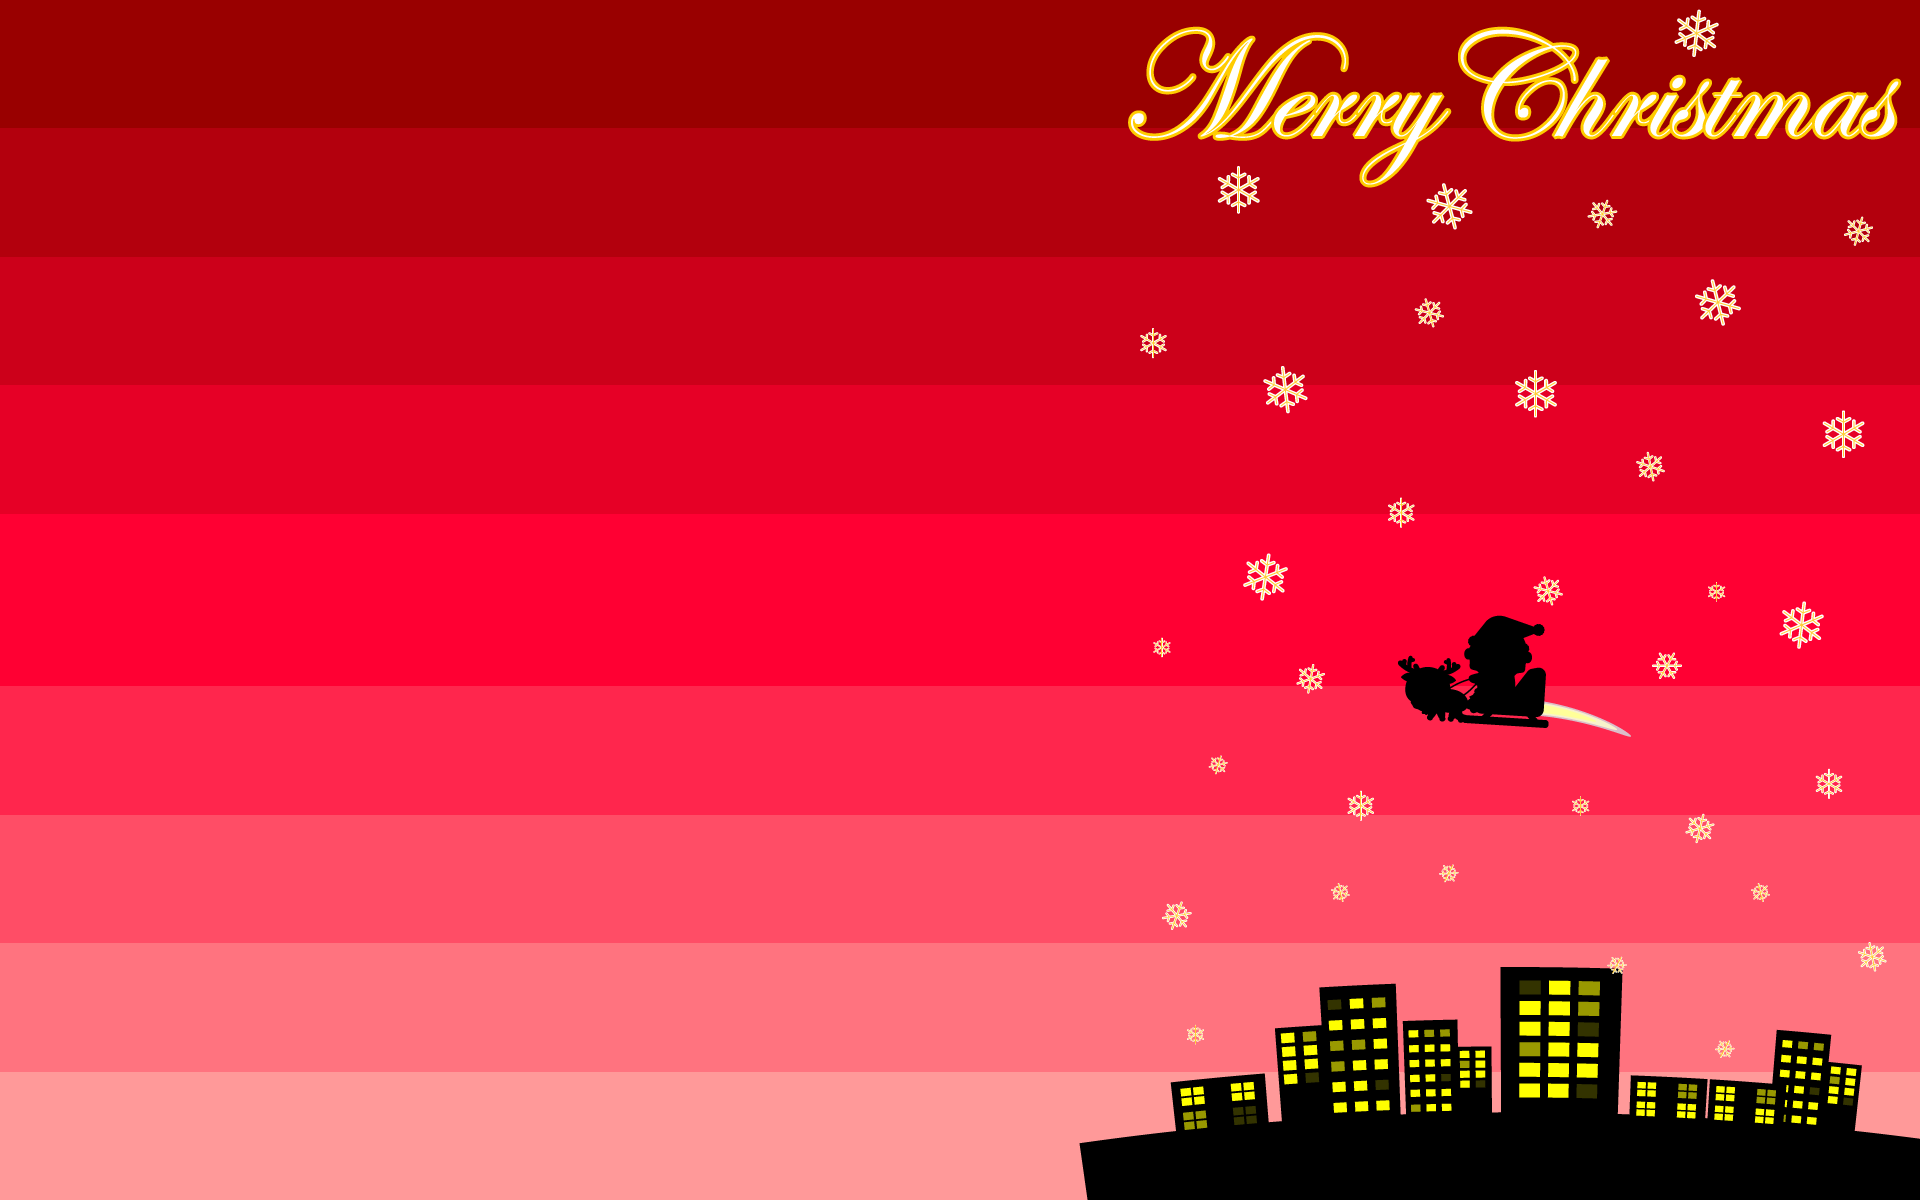 wallpaper6_christmas03b-pc